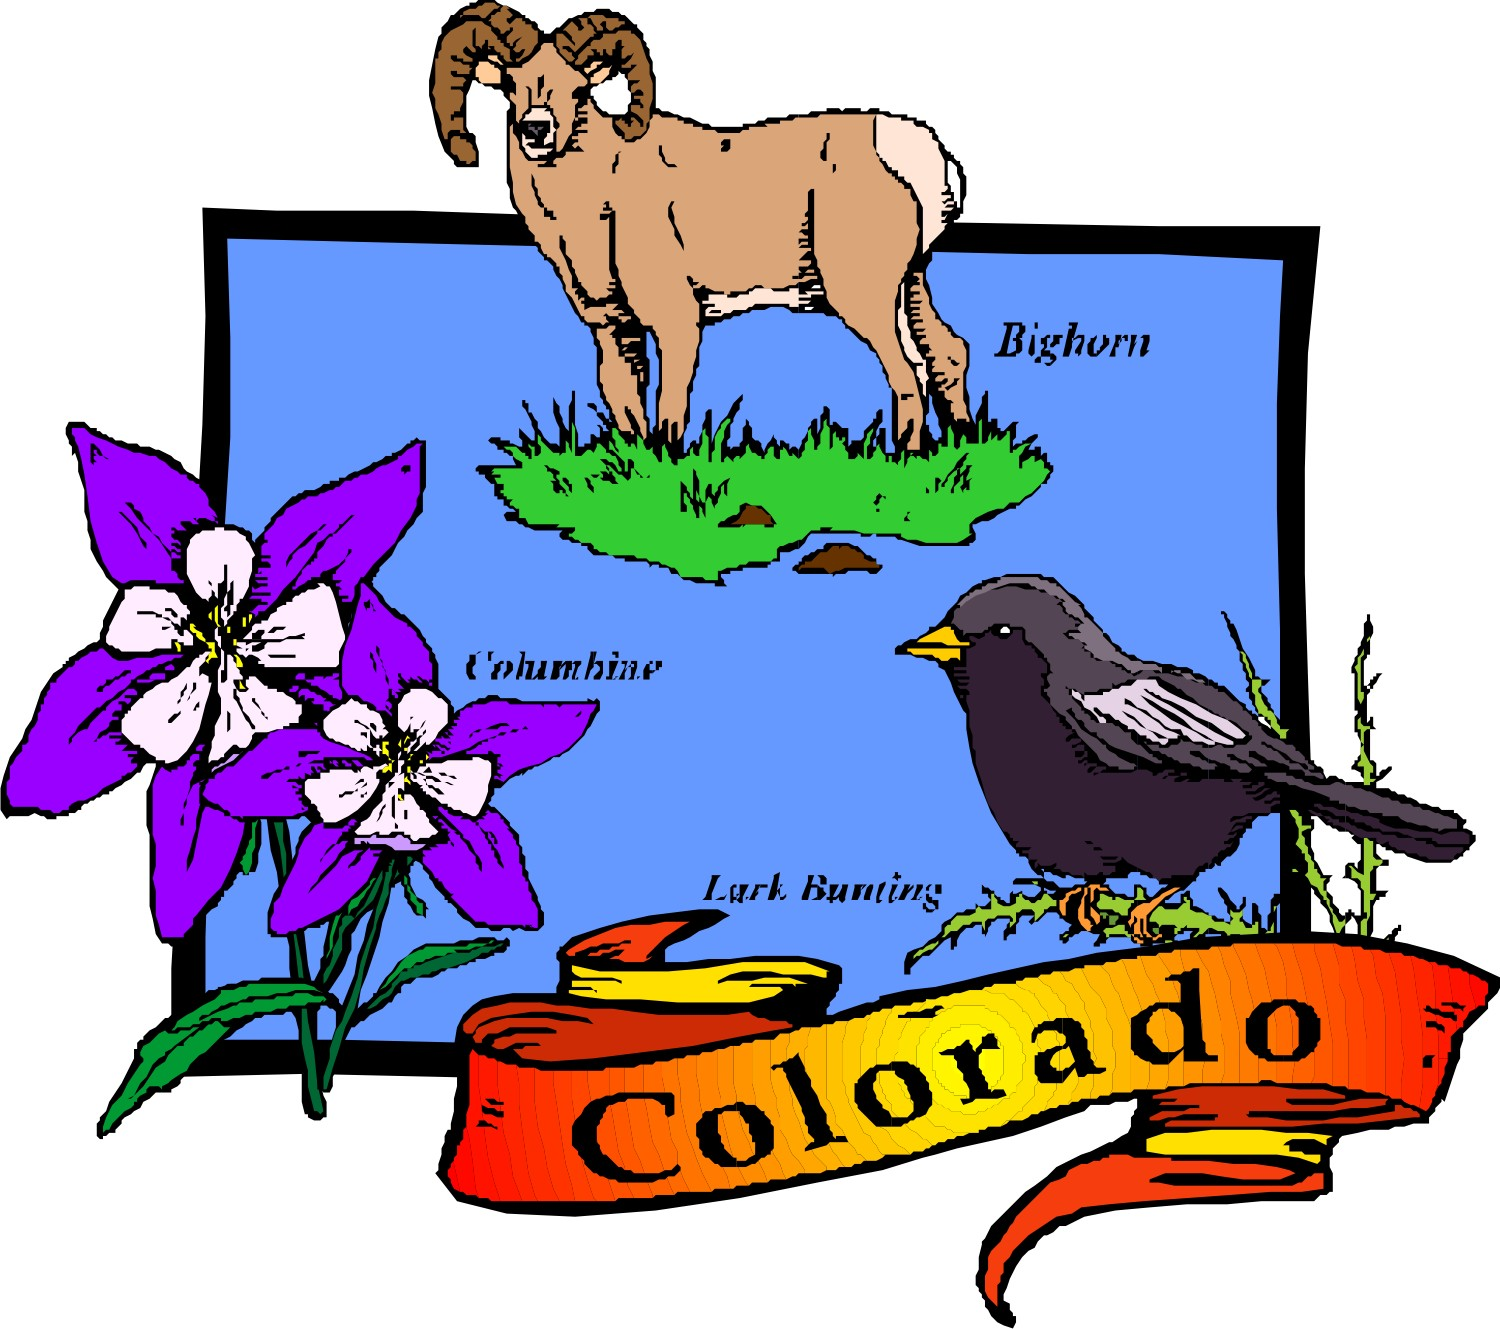 Colorado State Clipart at GetDrawings.com.